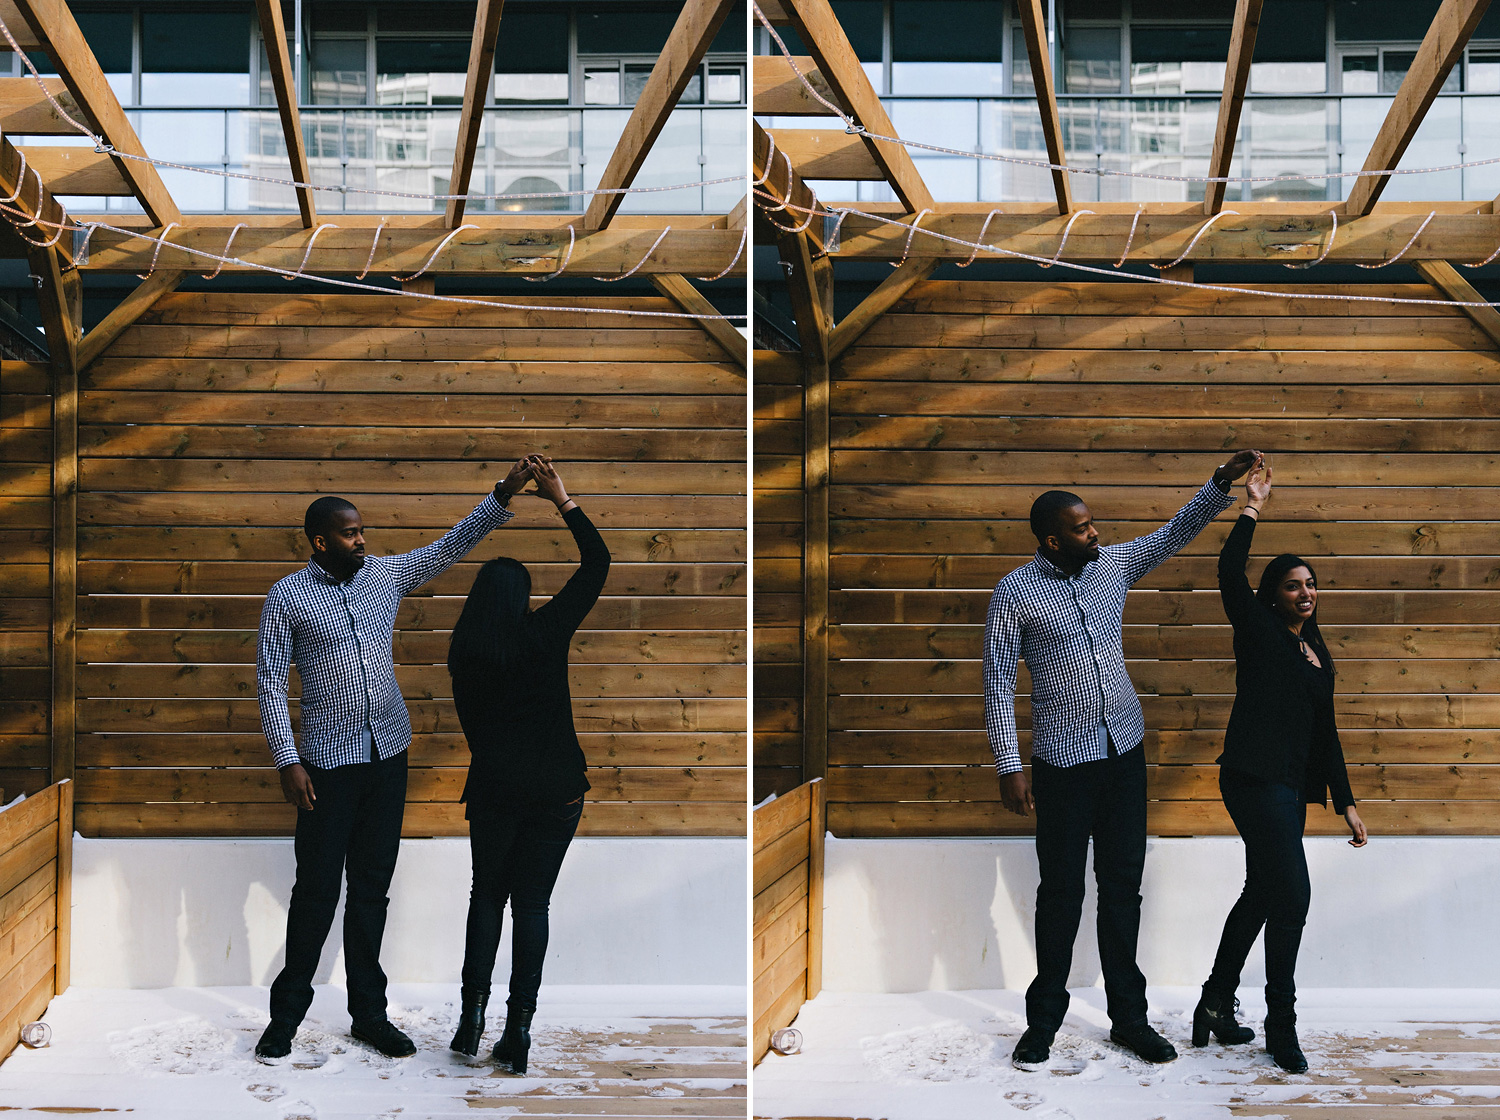 130-dancing-on-the-patio-of-pearl-king-in-toronto-for-an-engagement-shoot.jpg